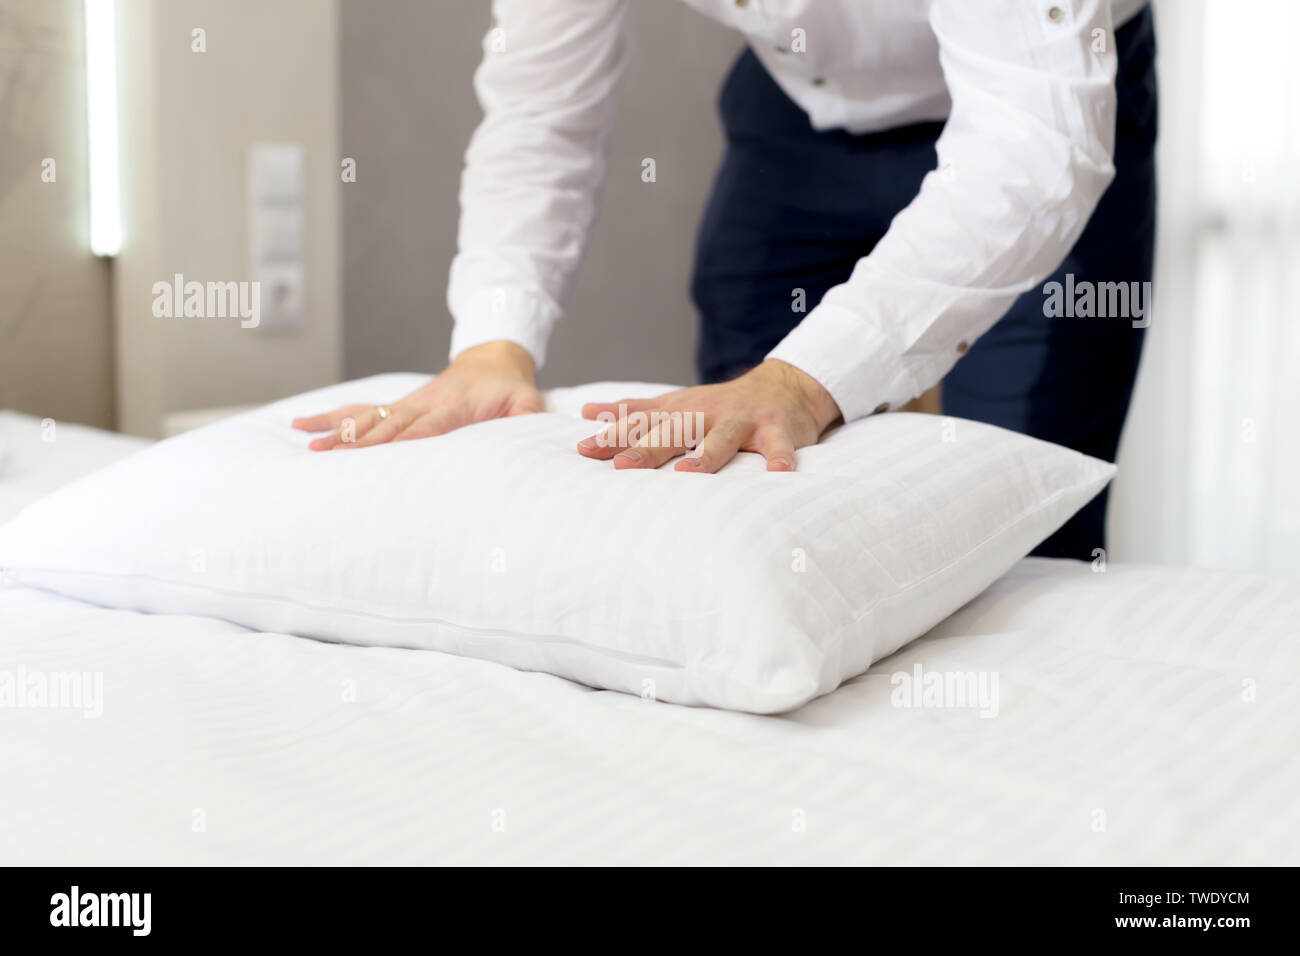 hotel staff setting up pillow on bed - Stock Image